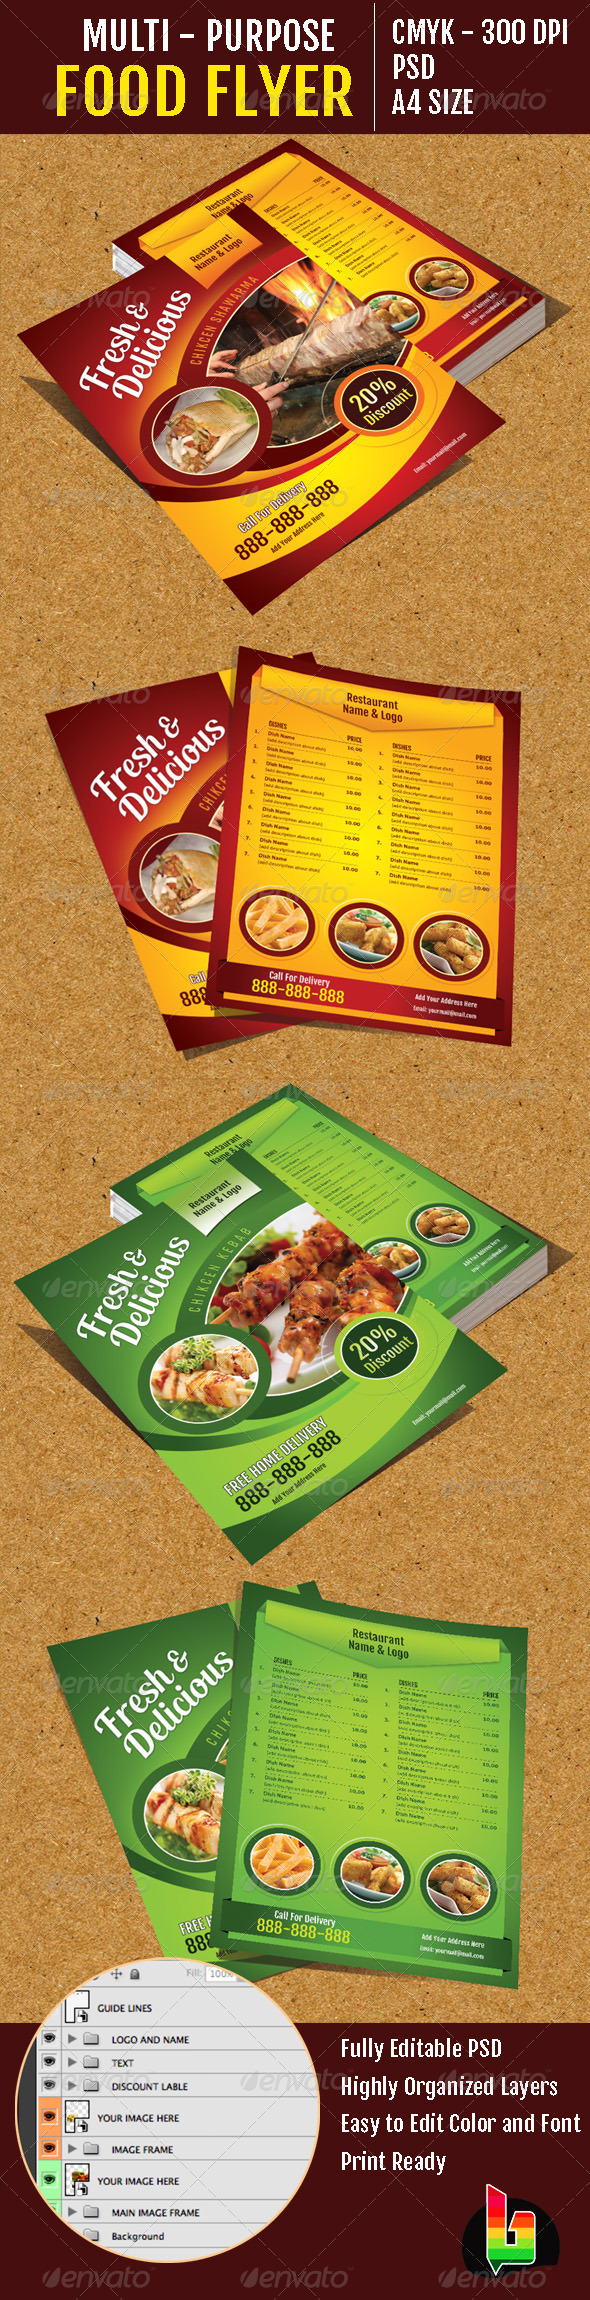 GraphicRiver Multi-Purpose Food Flyer 6689911